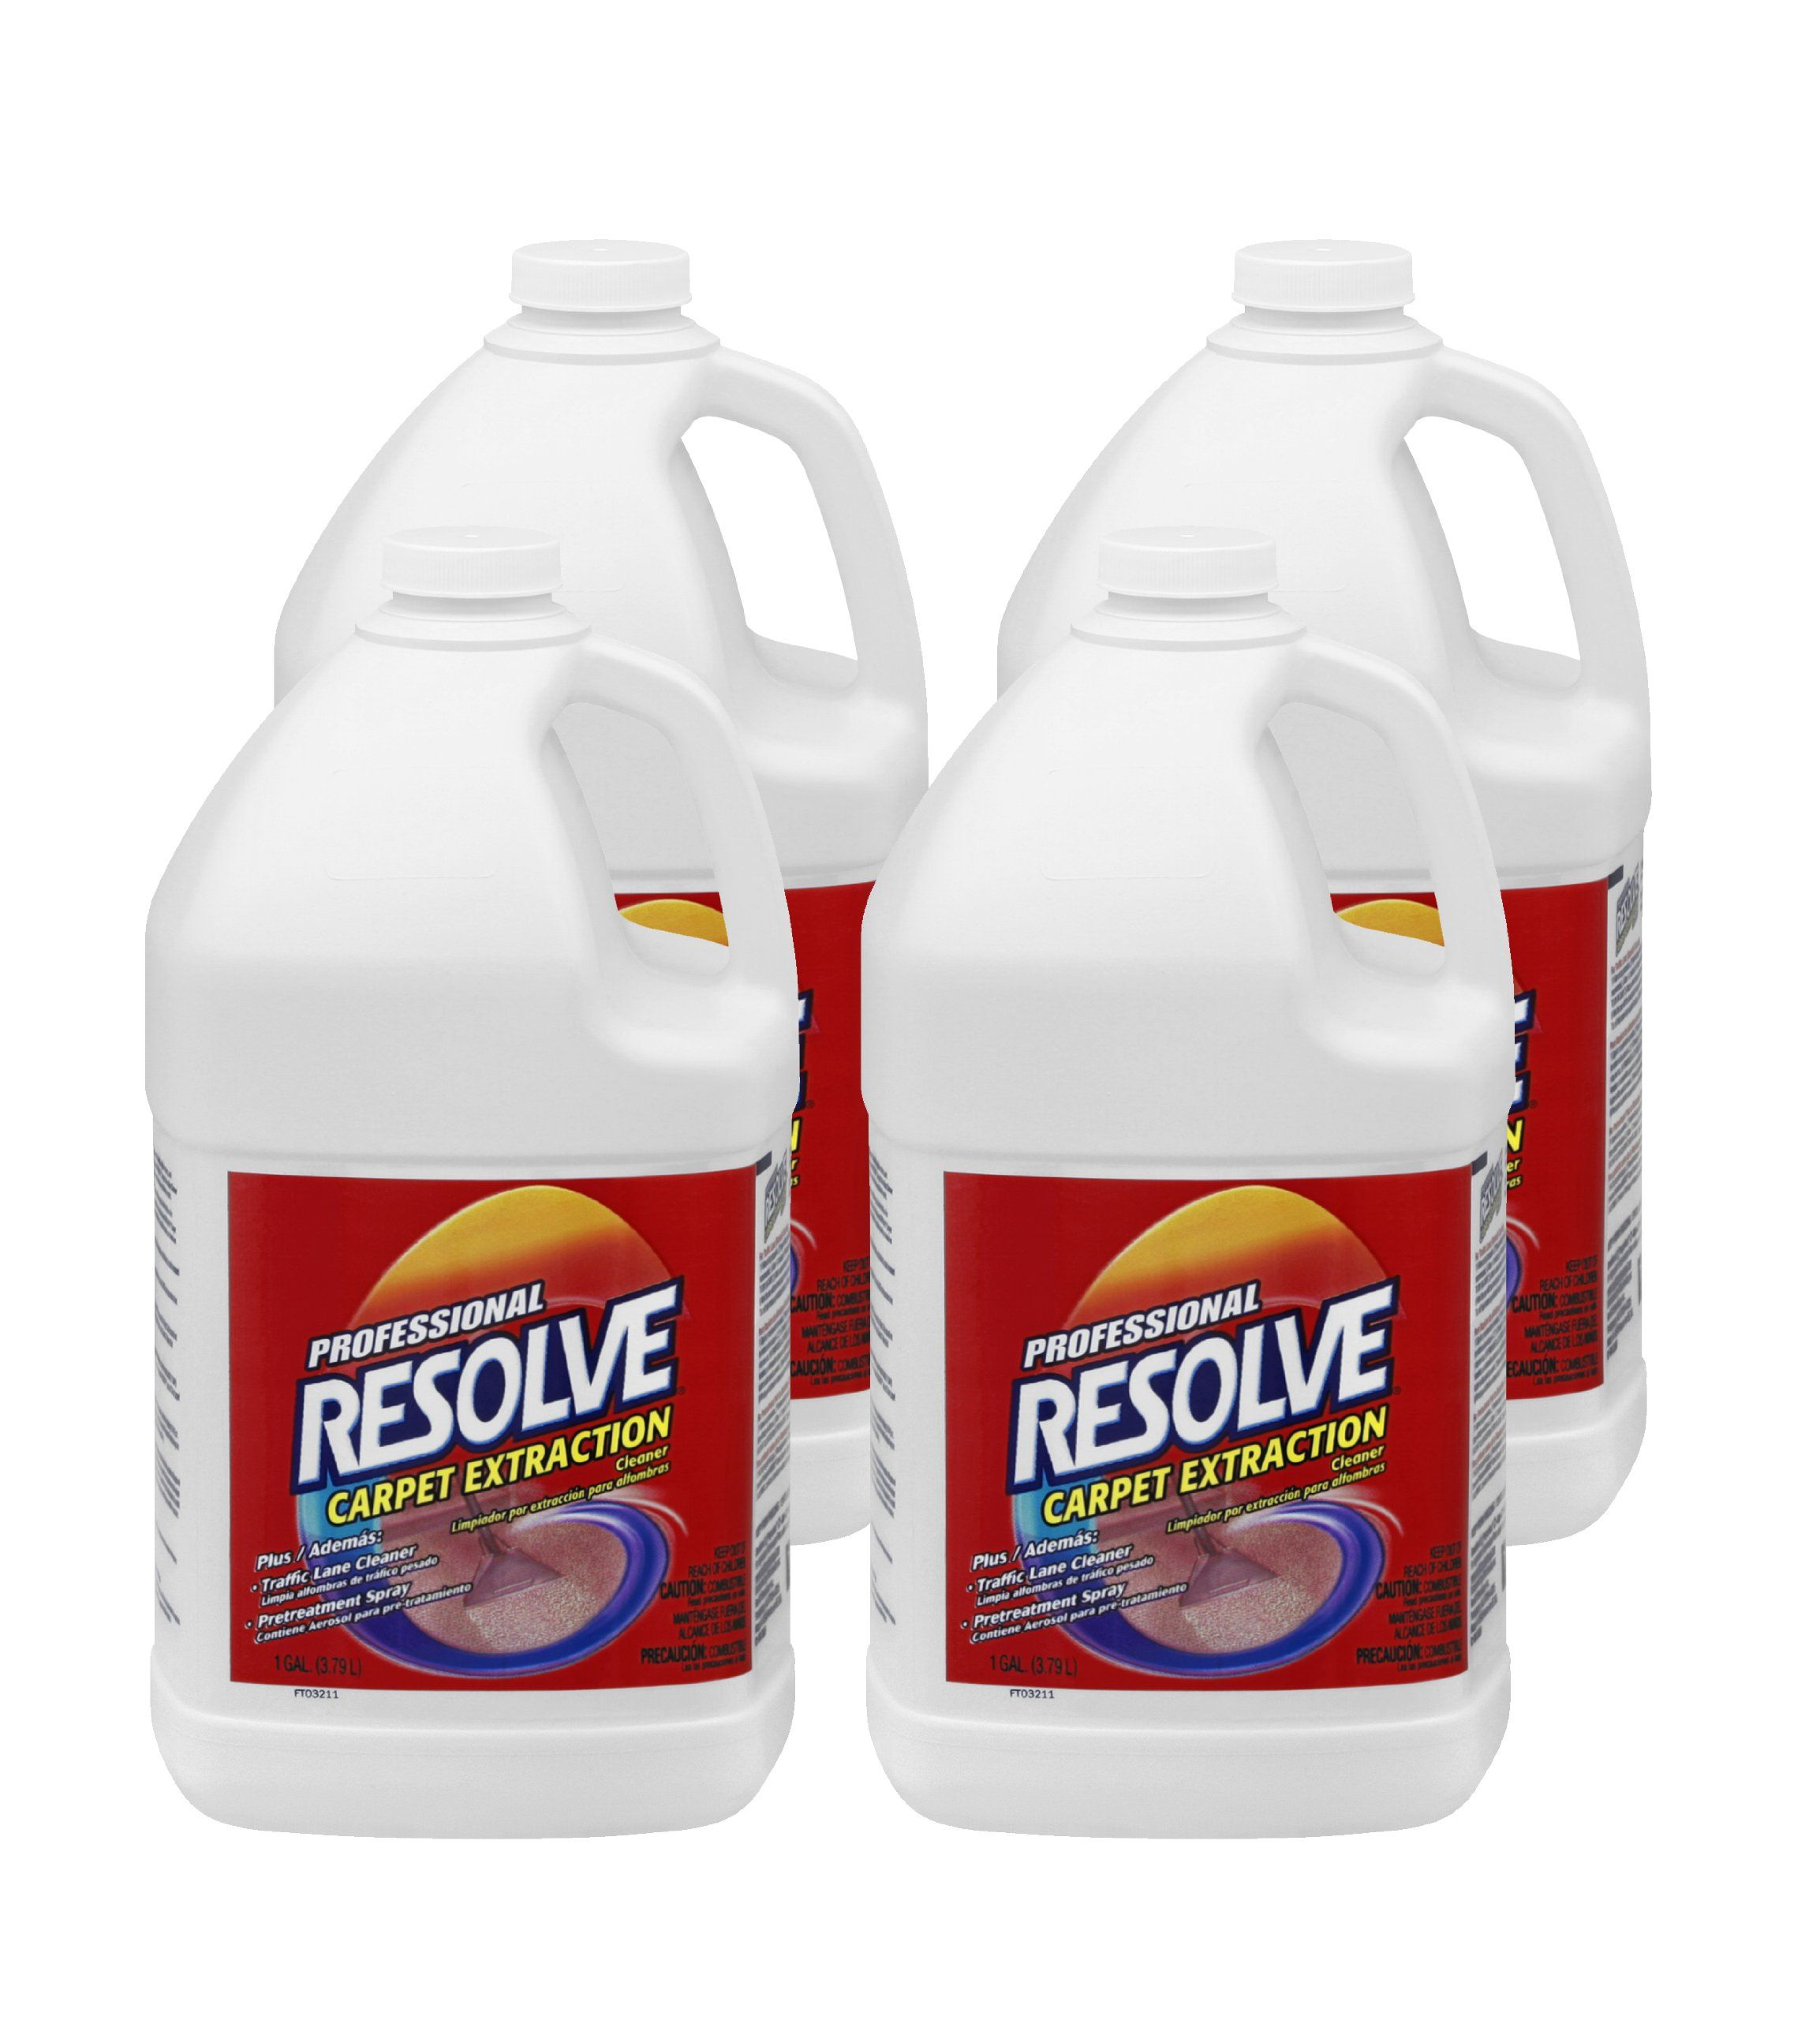 Resolve 97161 Professional Resolve Carpet Extraction Traffic Lane Cleaner Pretreatment Conc Use Dilution Learn Mor With Images Upholstery Cleaner Floor Cleaner Cleaning